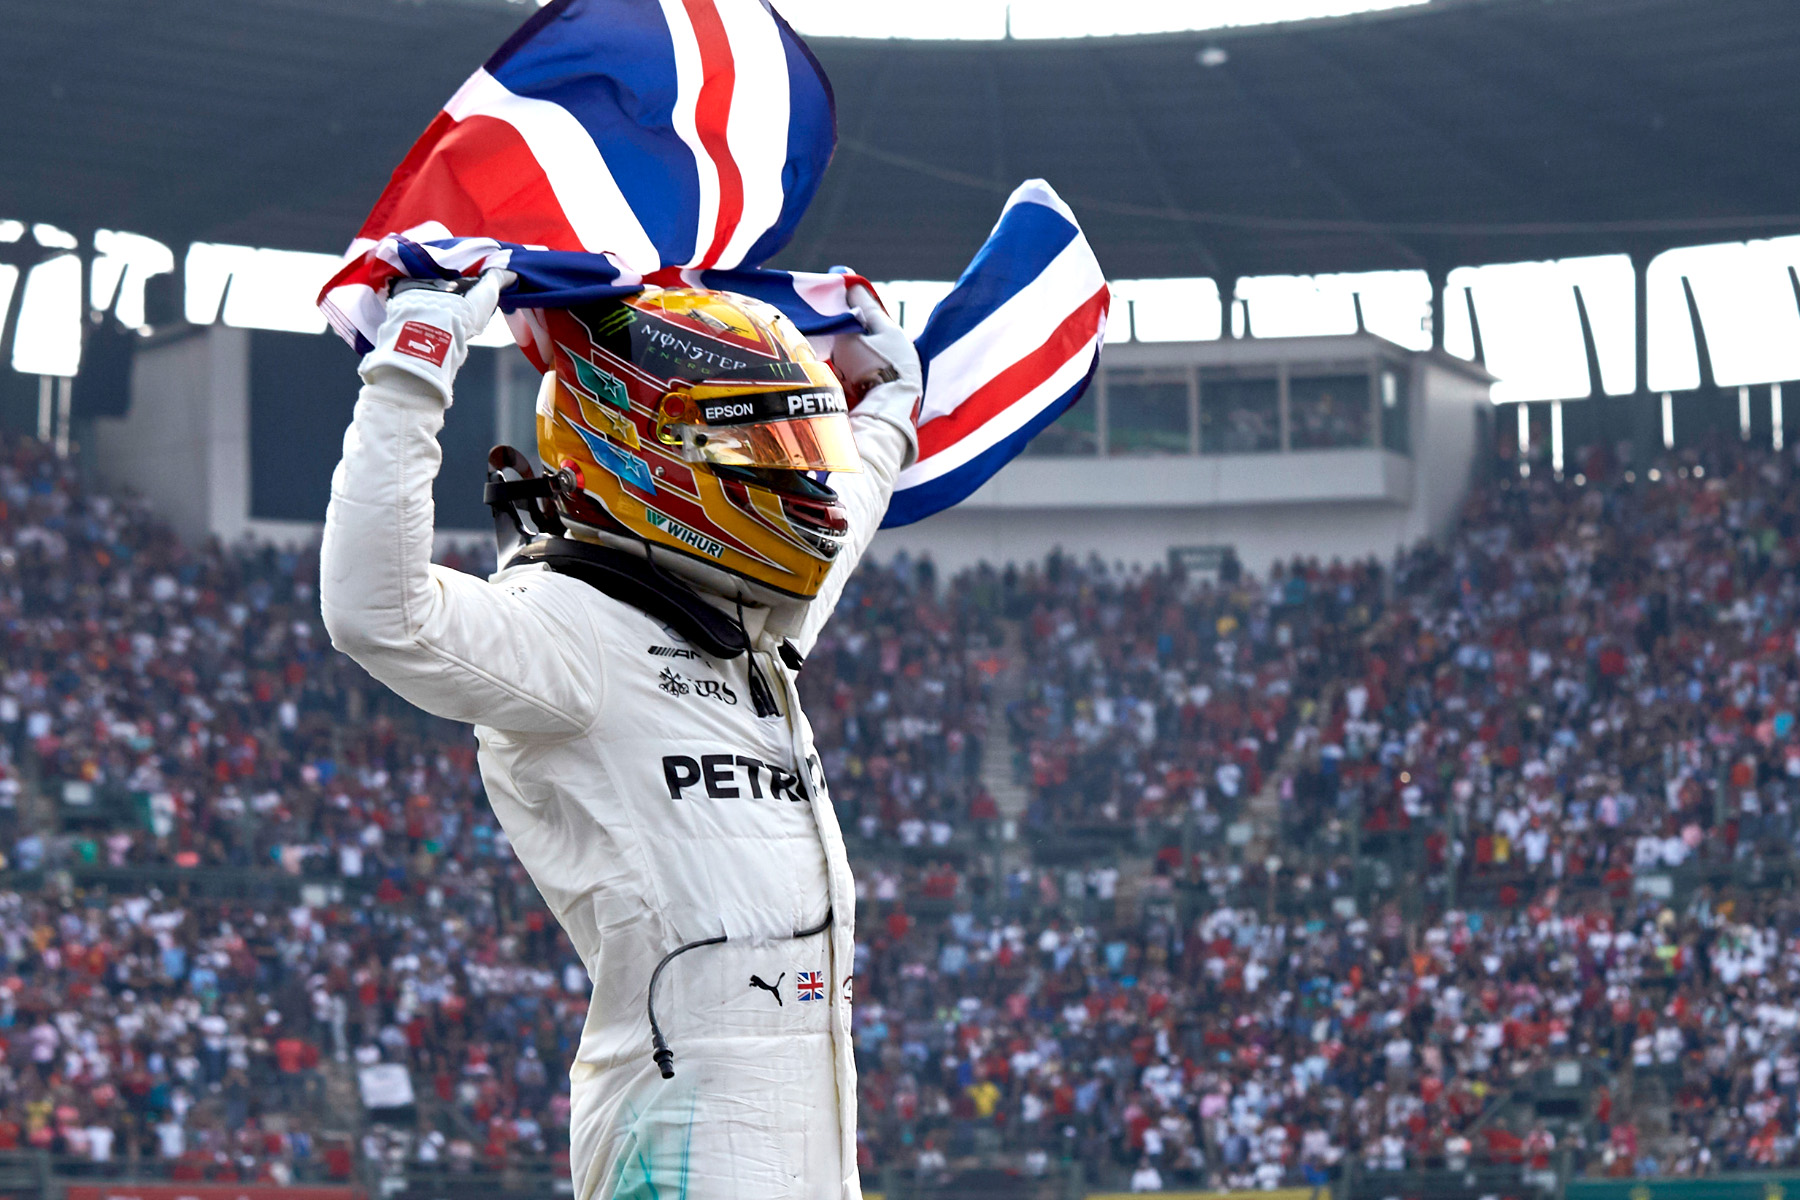 Lewis Hamilton celebrates his fourth world championship at the end of the Mexican Grand Prix.